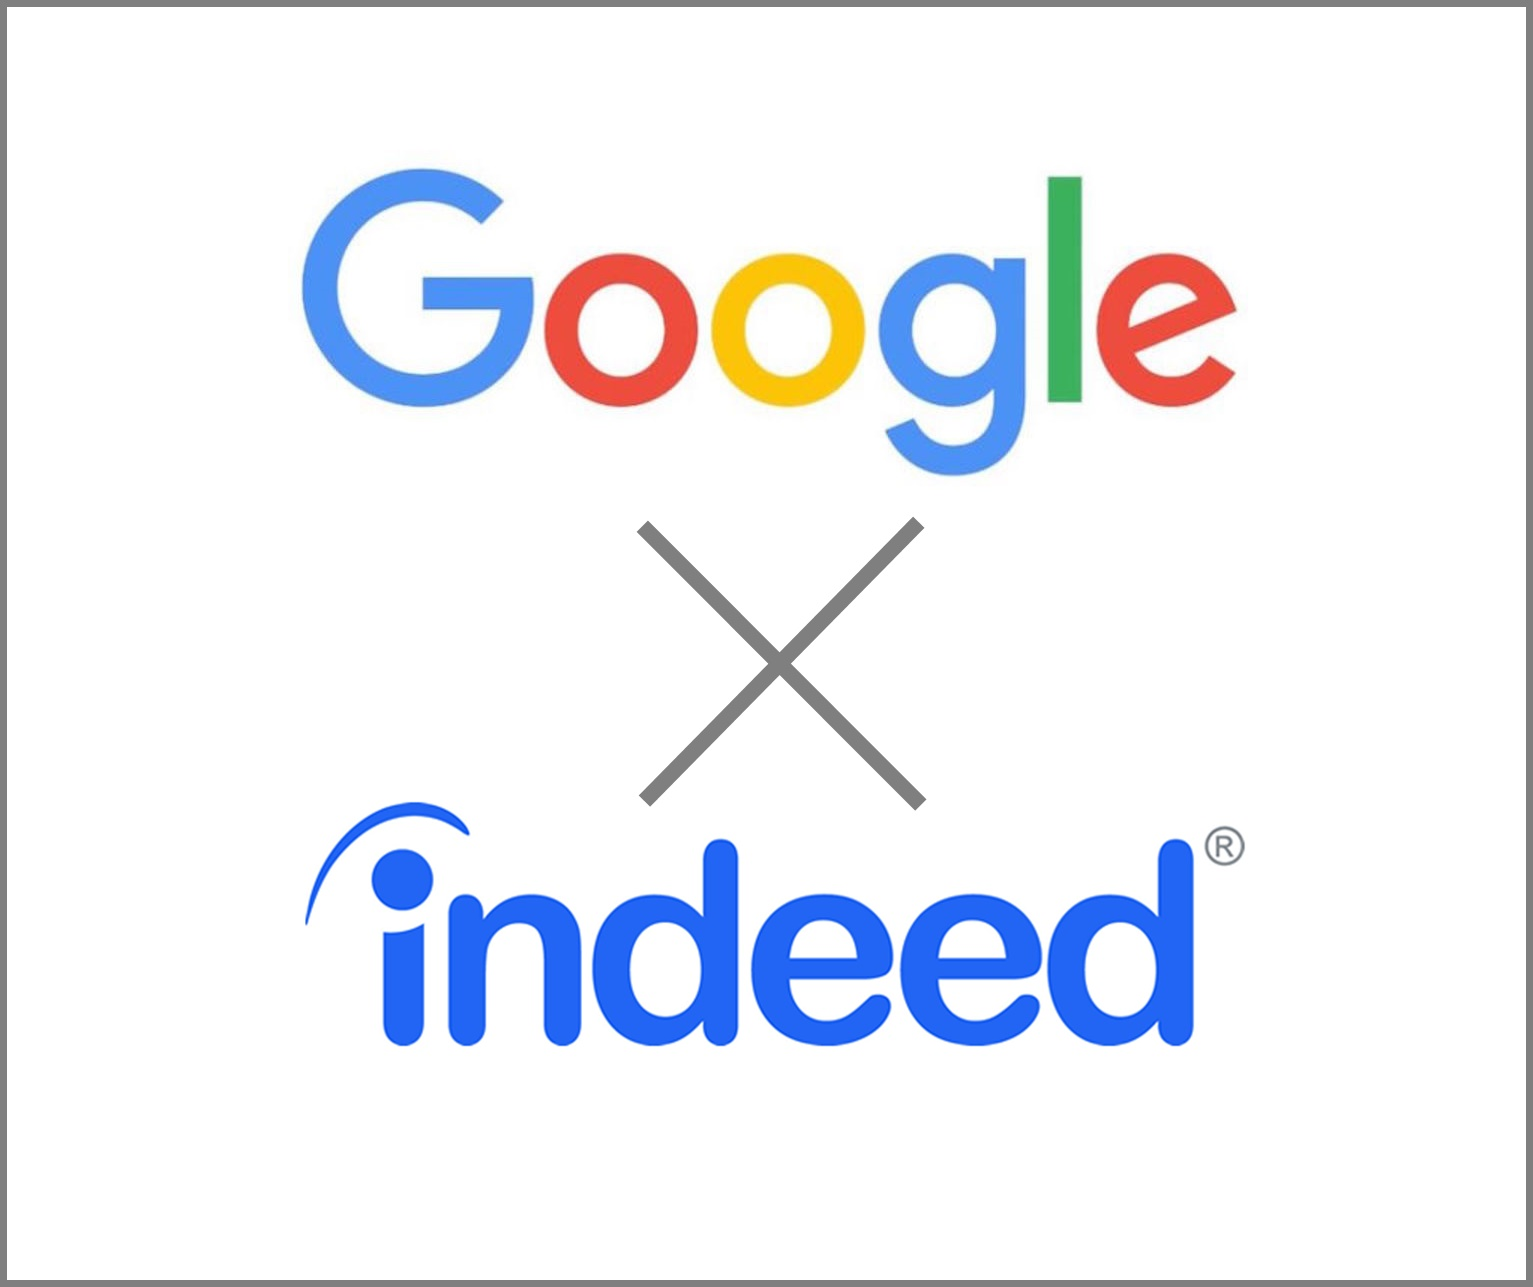 google-indeed